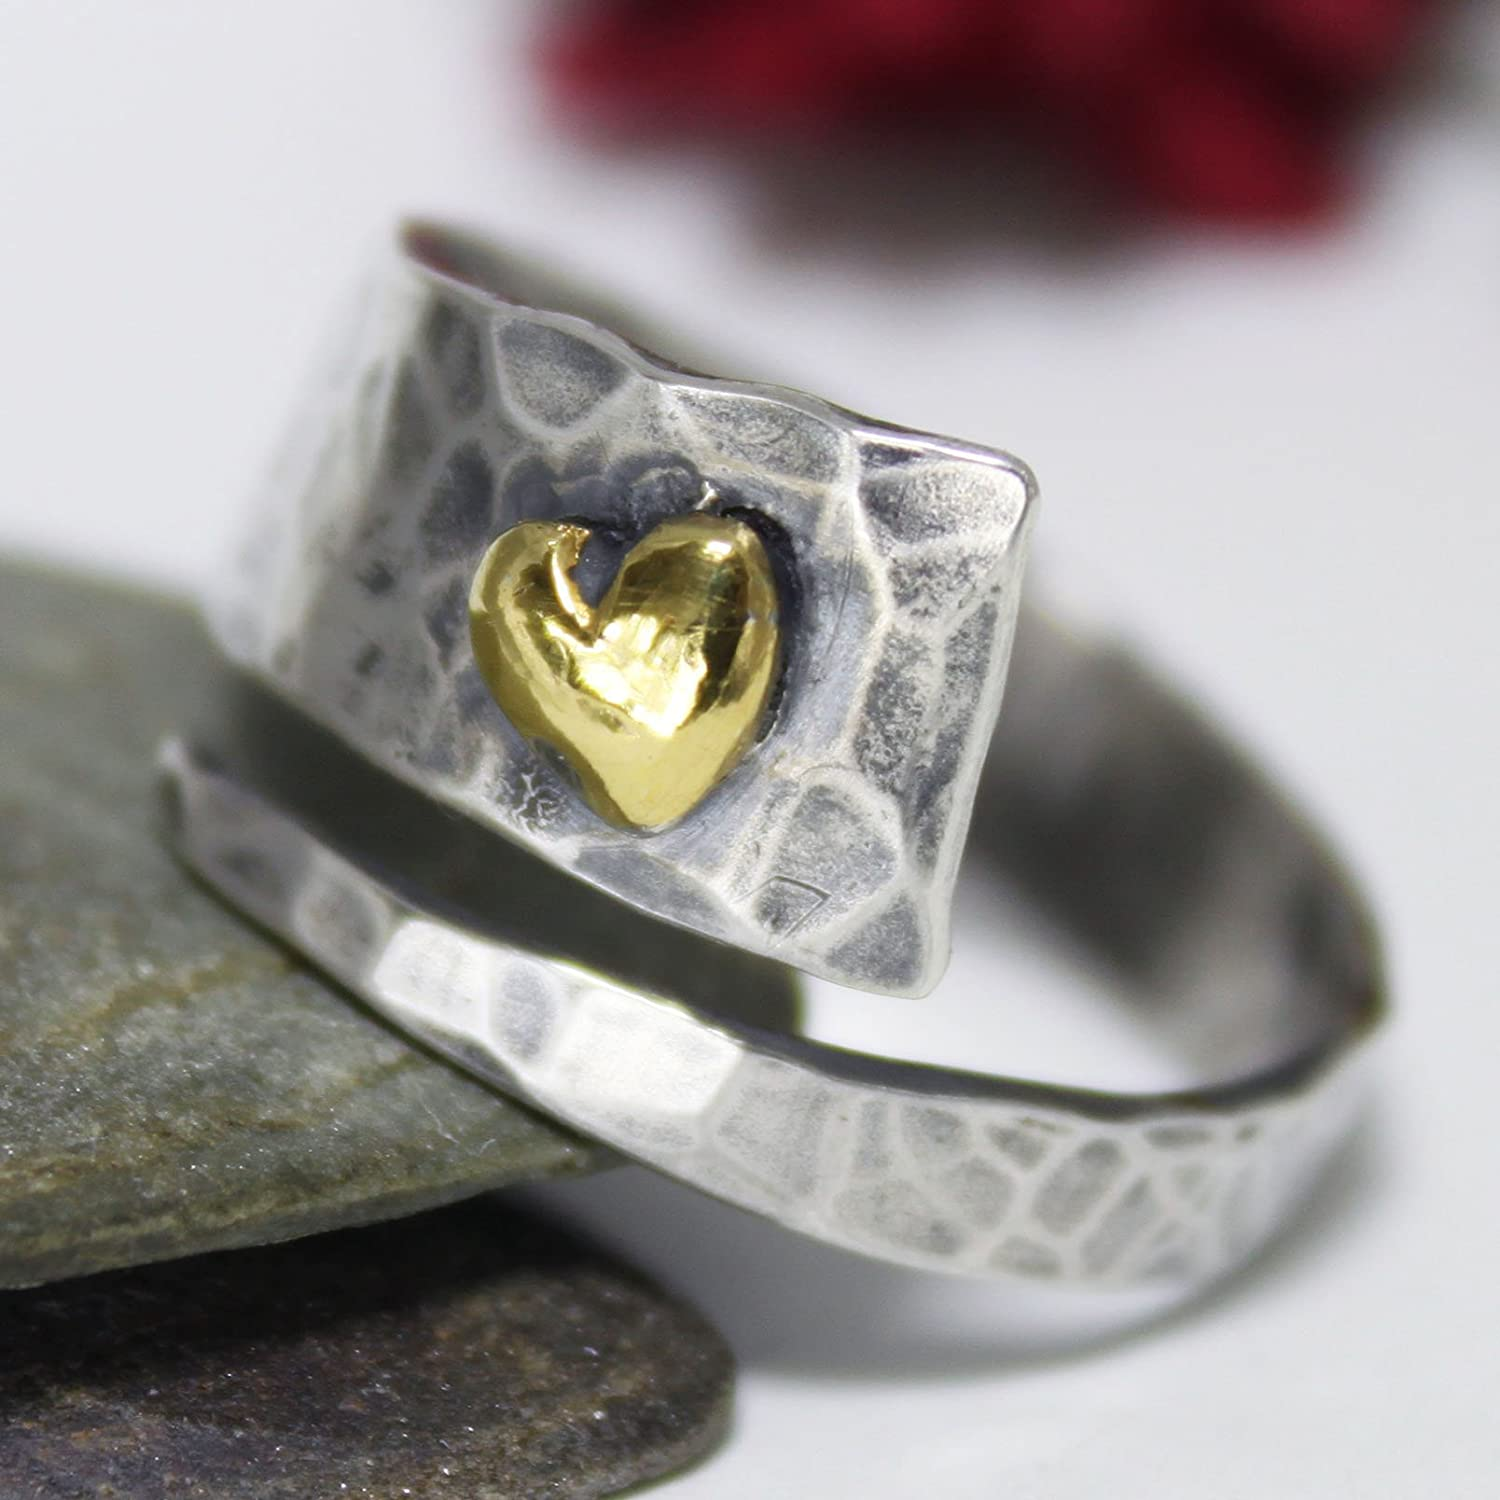 Golden Heart Ring, Adjustable Ring, Unique Sterling Silver 24K Keum-boo Ring, Band Ring, Hammered Ring, Rustic Silver Ring